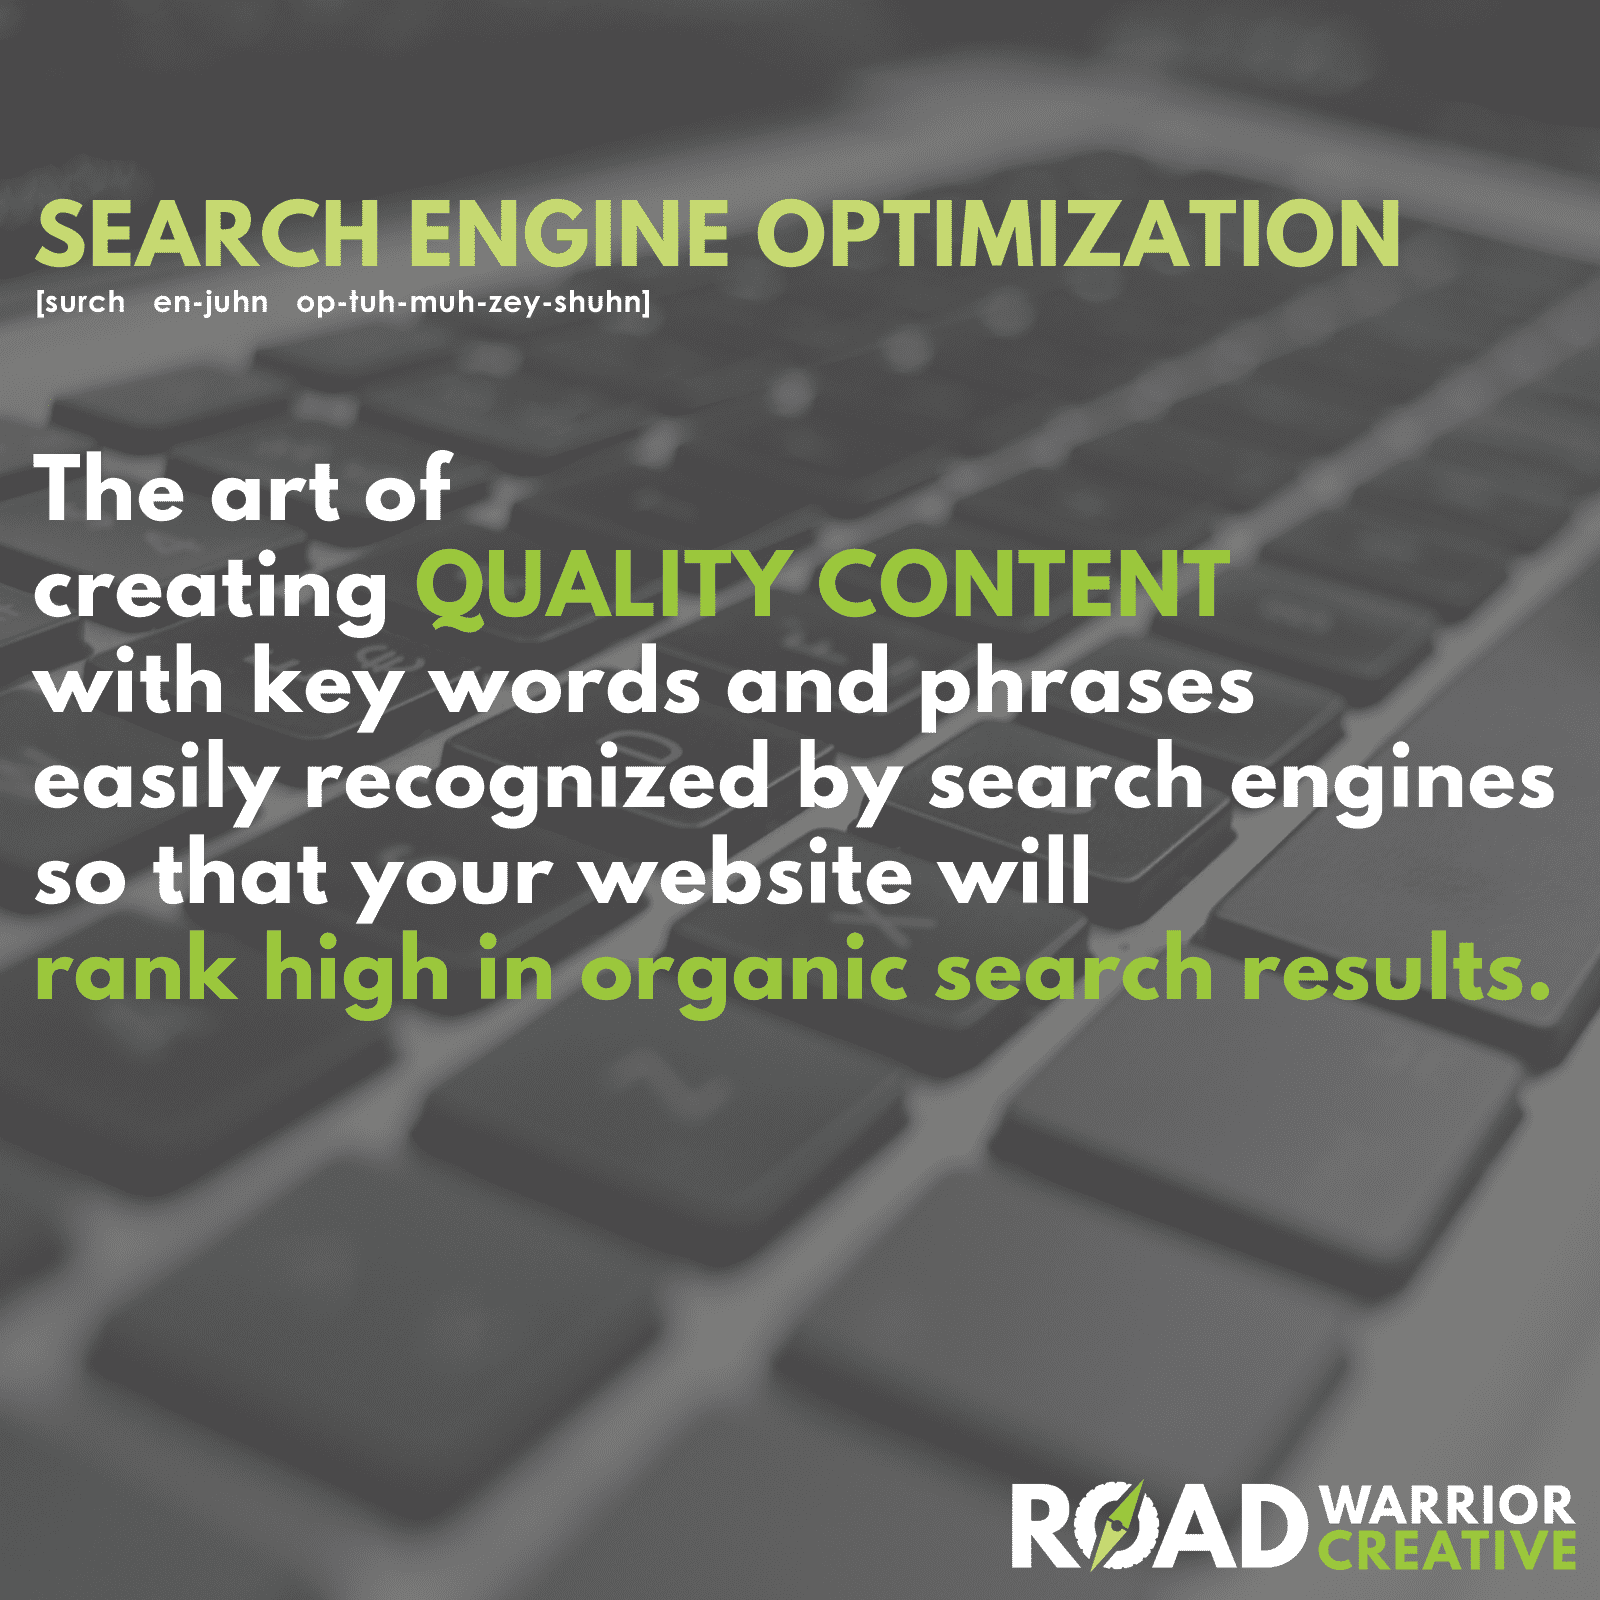 Fort Collins Search Engine Optimization Workshop - Road Warrior Creative